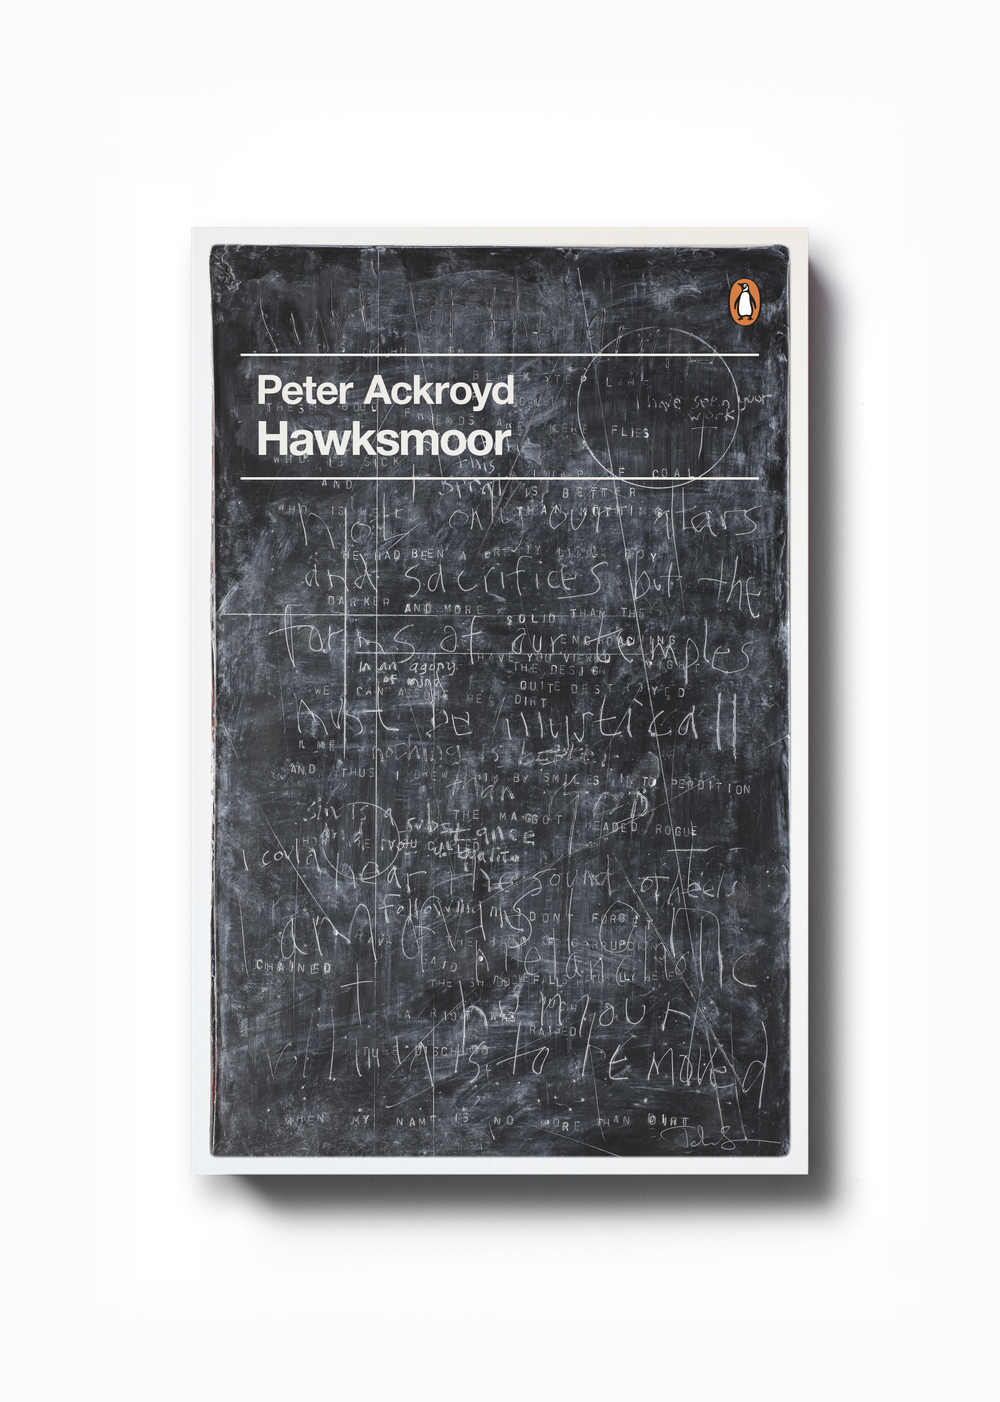 Hawksmoor by Peter Ackroyd (Penguin Decades series) - Art: John Squire Design: Jim Stoddart